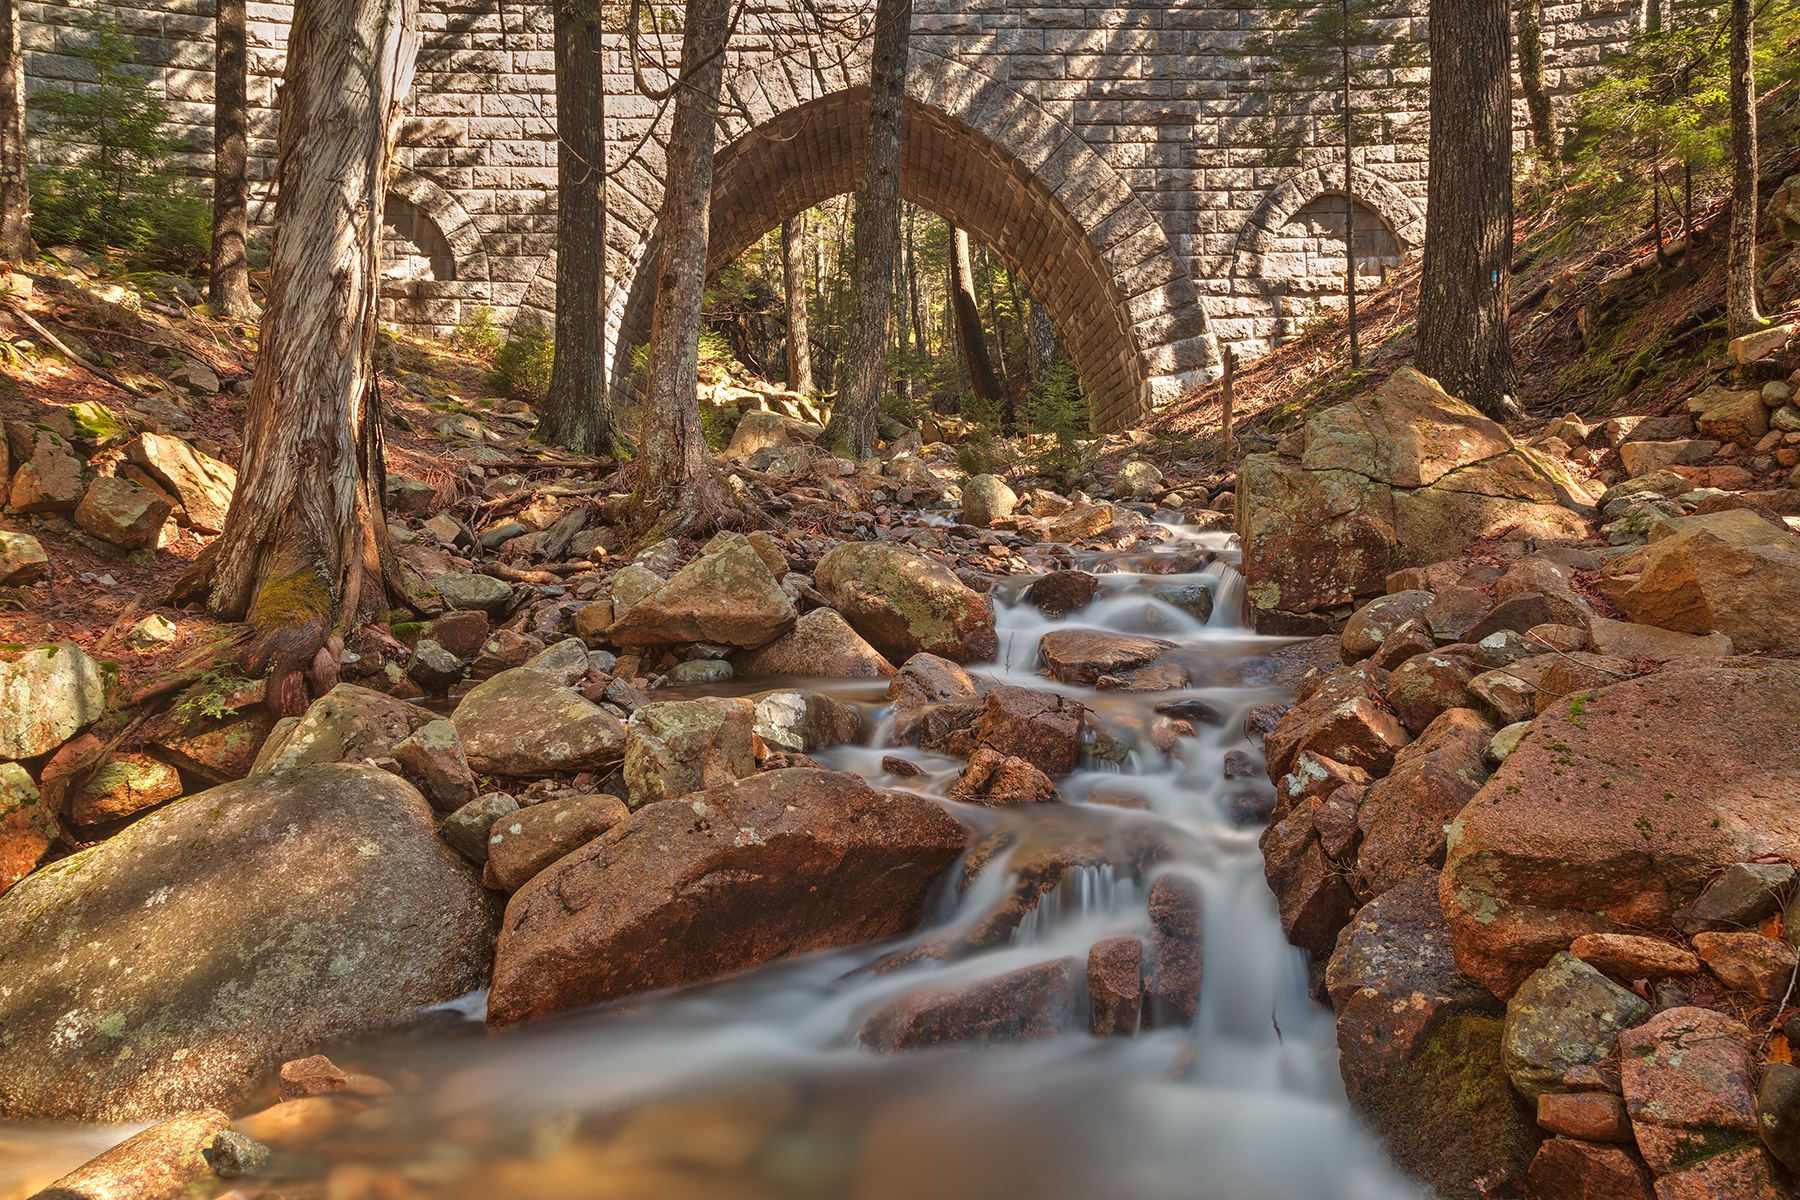 Hadlock bridge brook - hdr photo